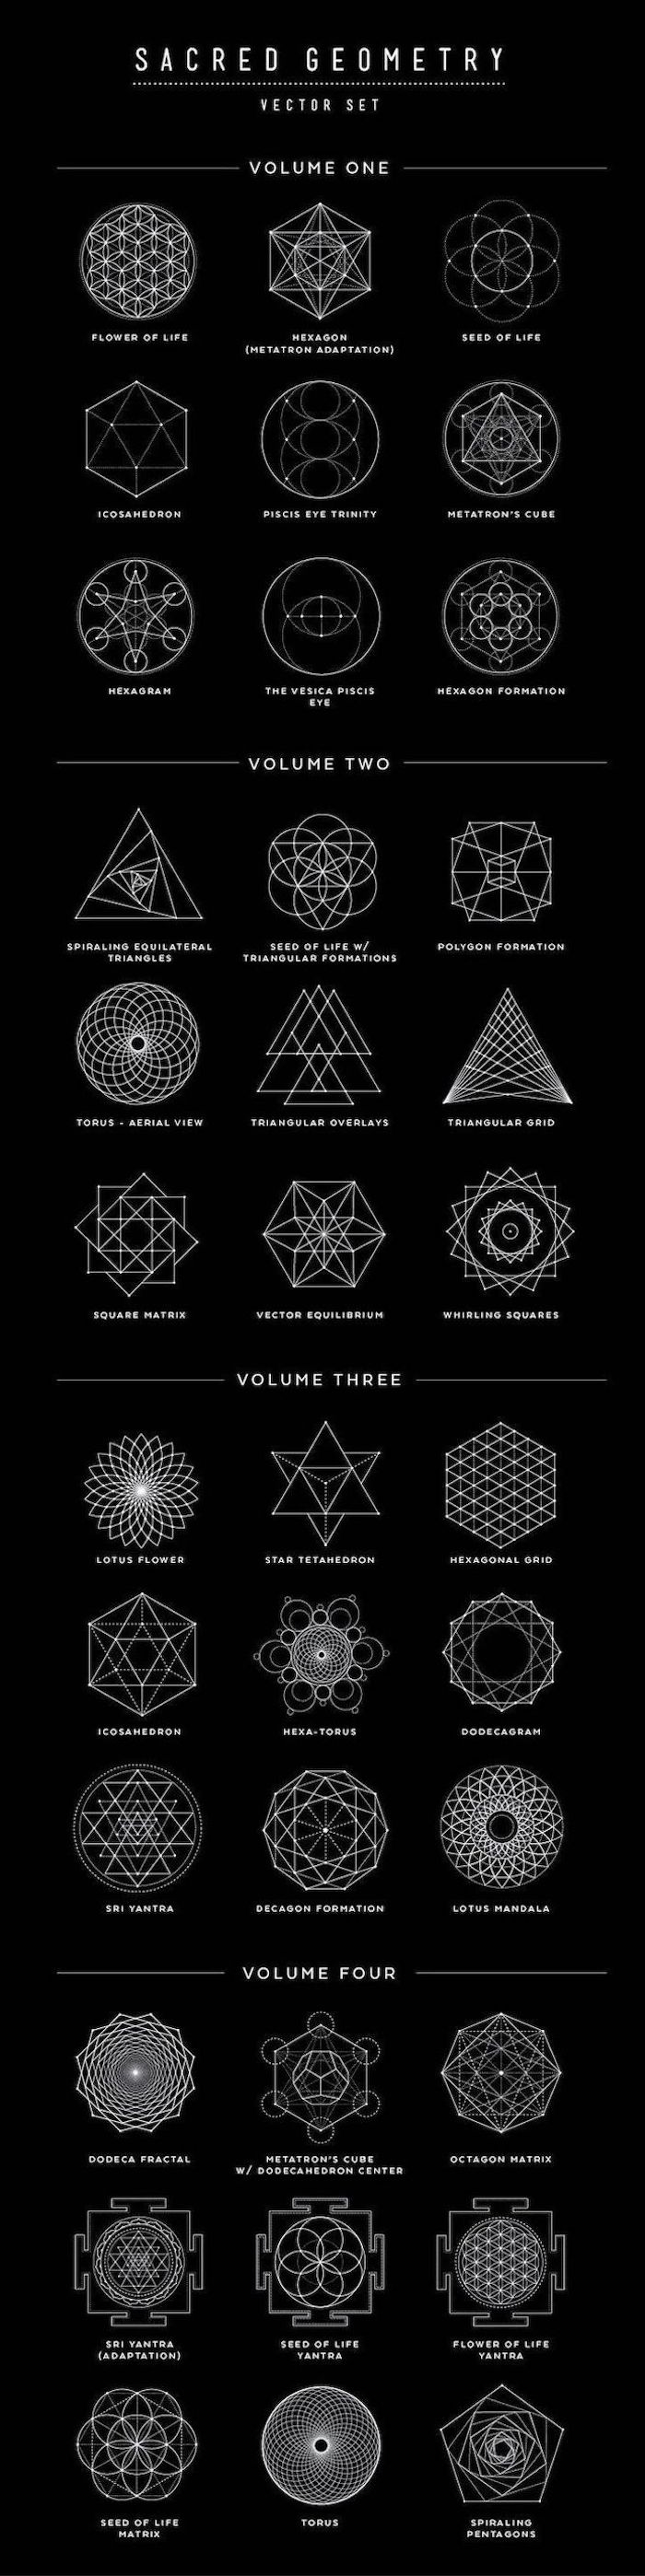 geometry symbols which are sacred spiritual tattoos chart with the symbols and meaning black background